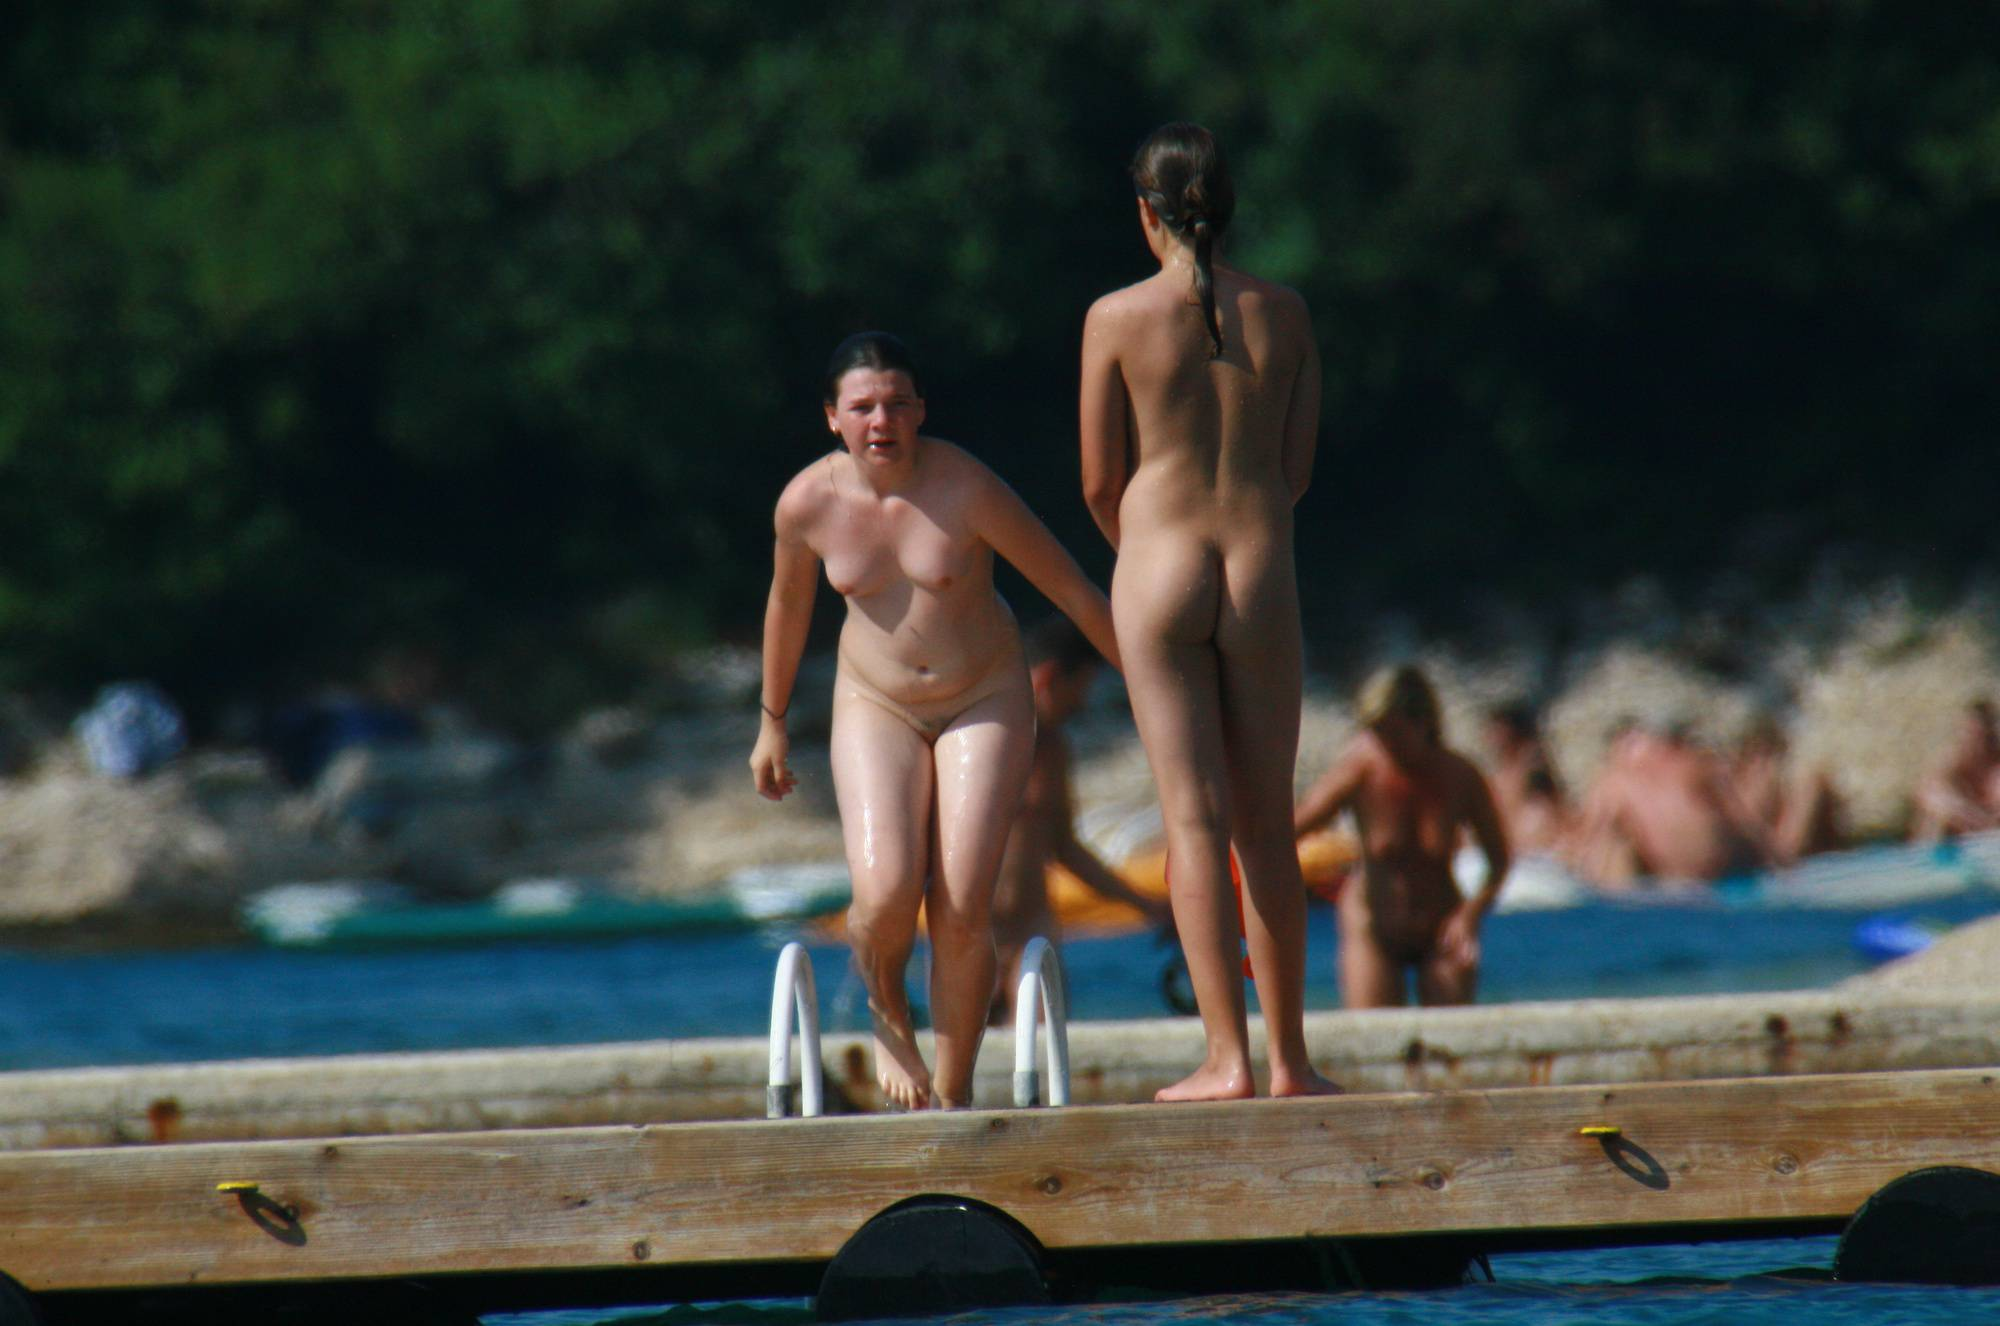 Nudist Pictures Wooden Island Freedom - 2